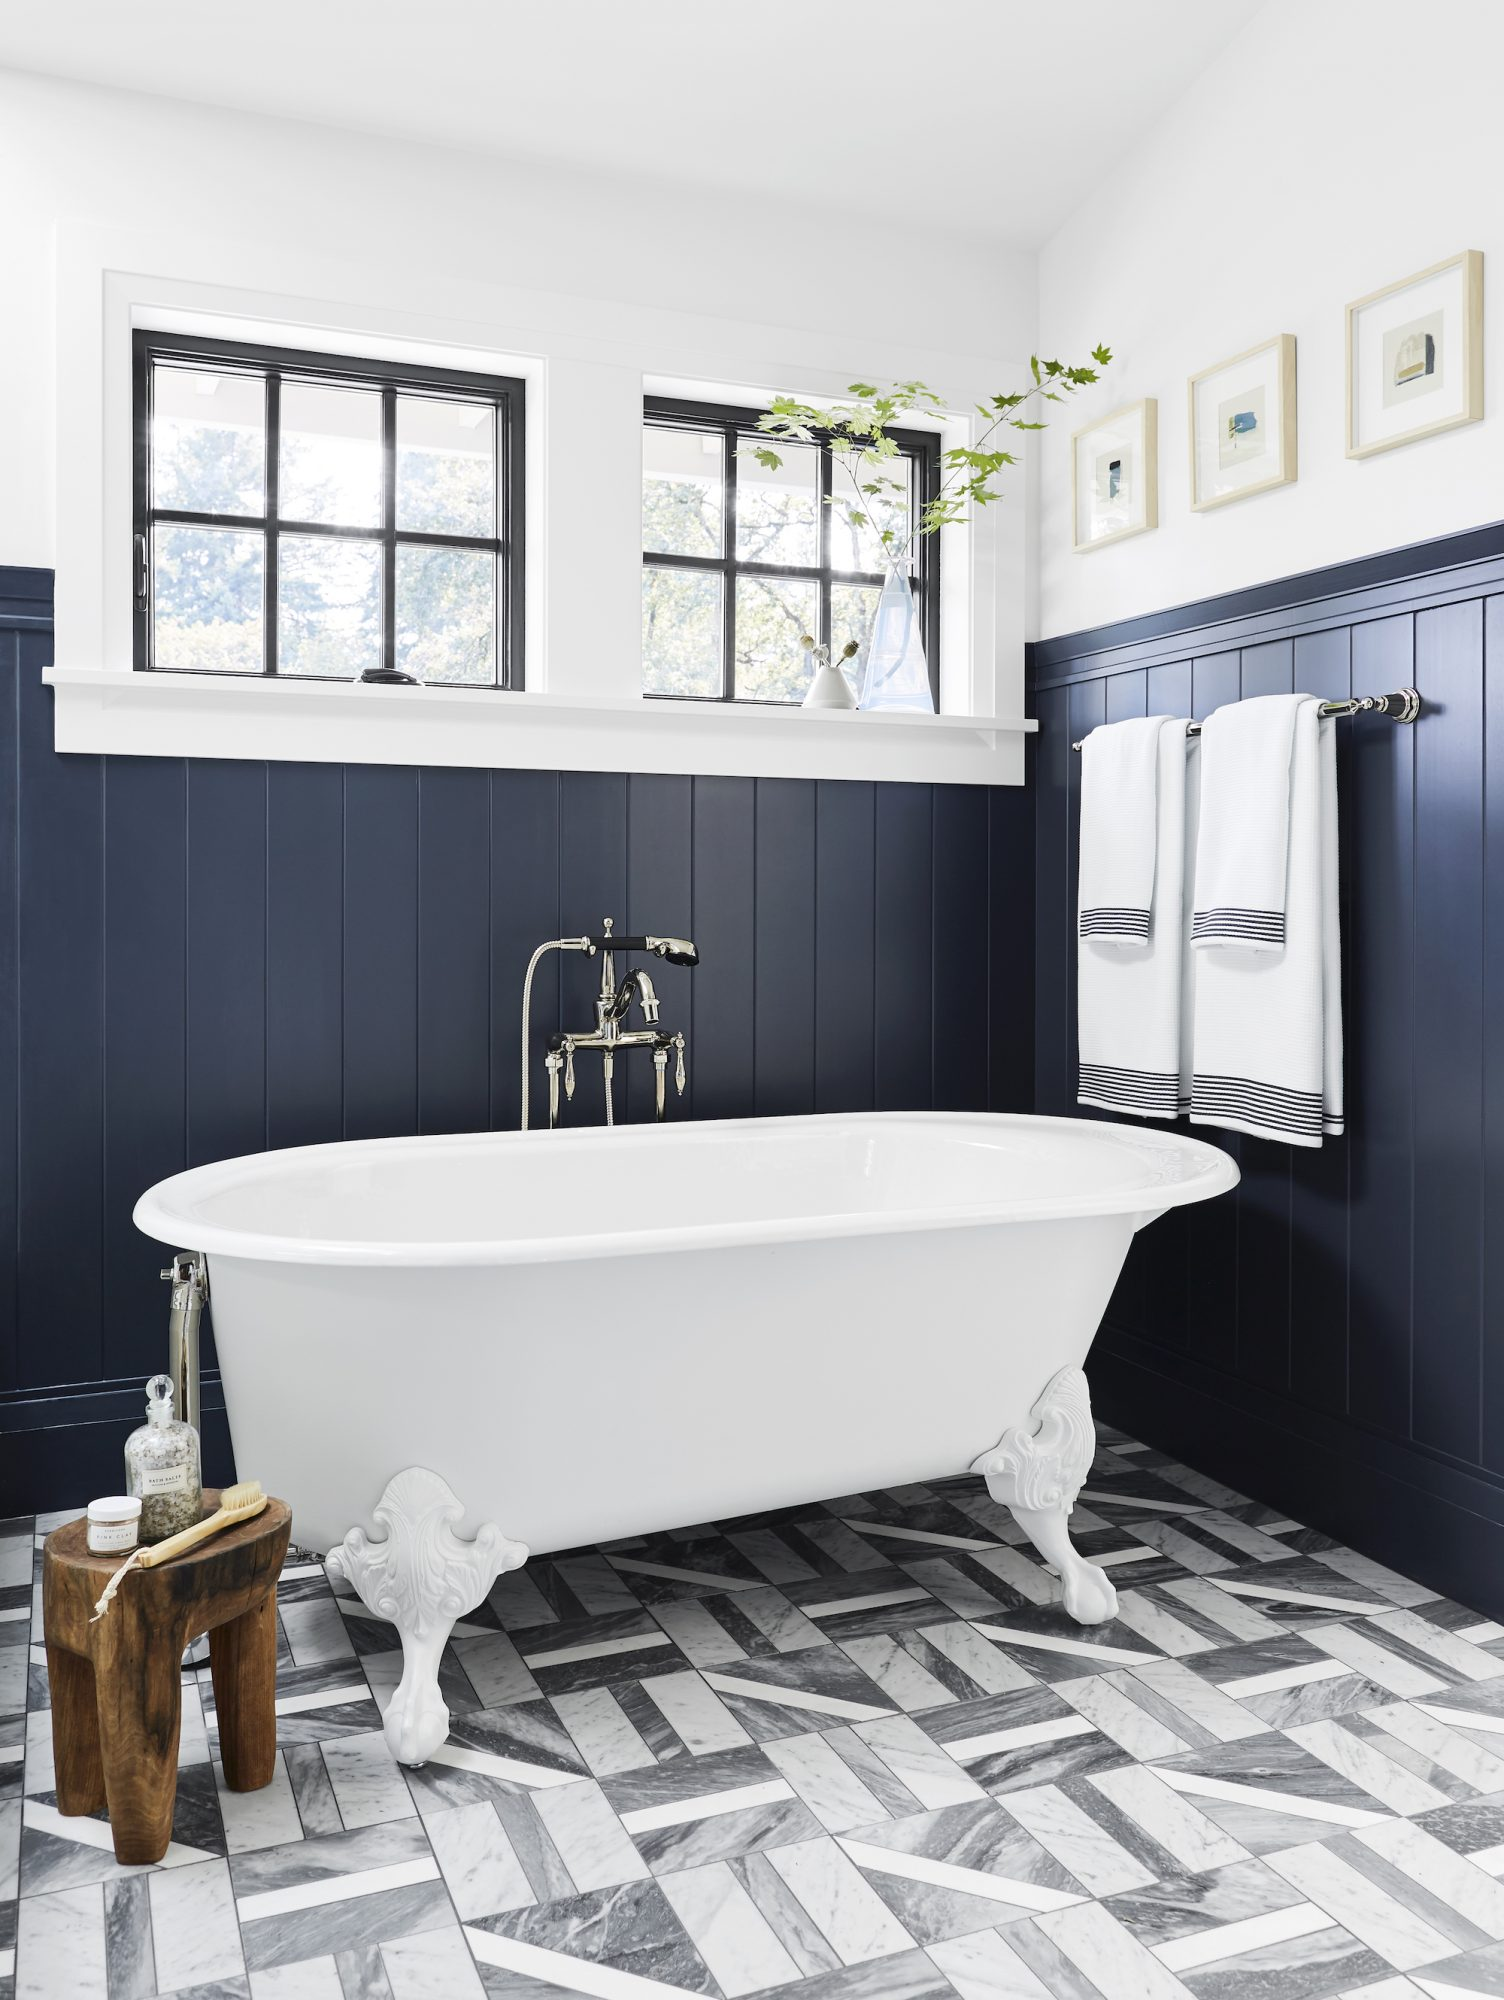 Bathroom with blue wall paneling on lower half